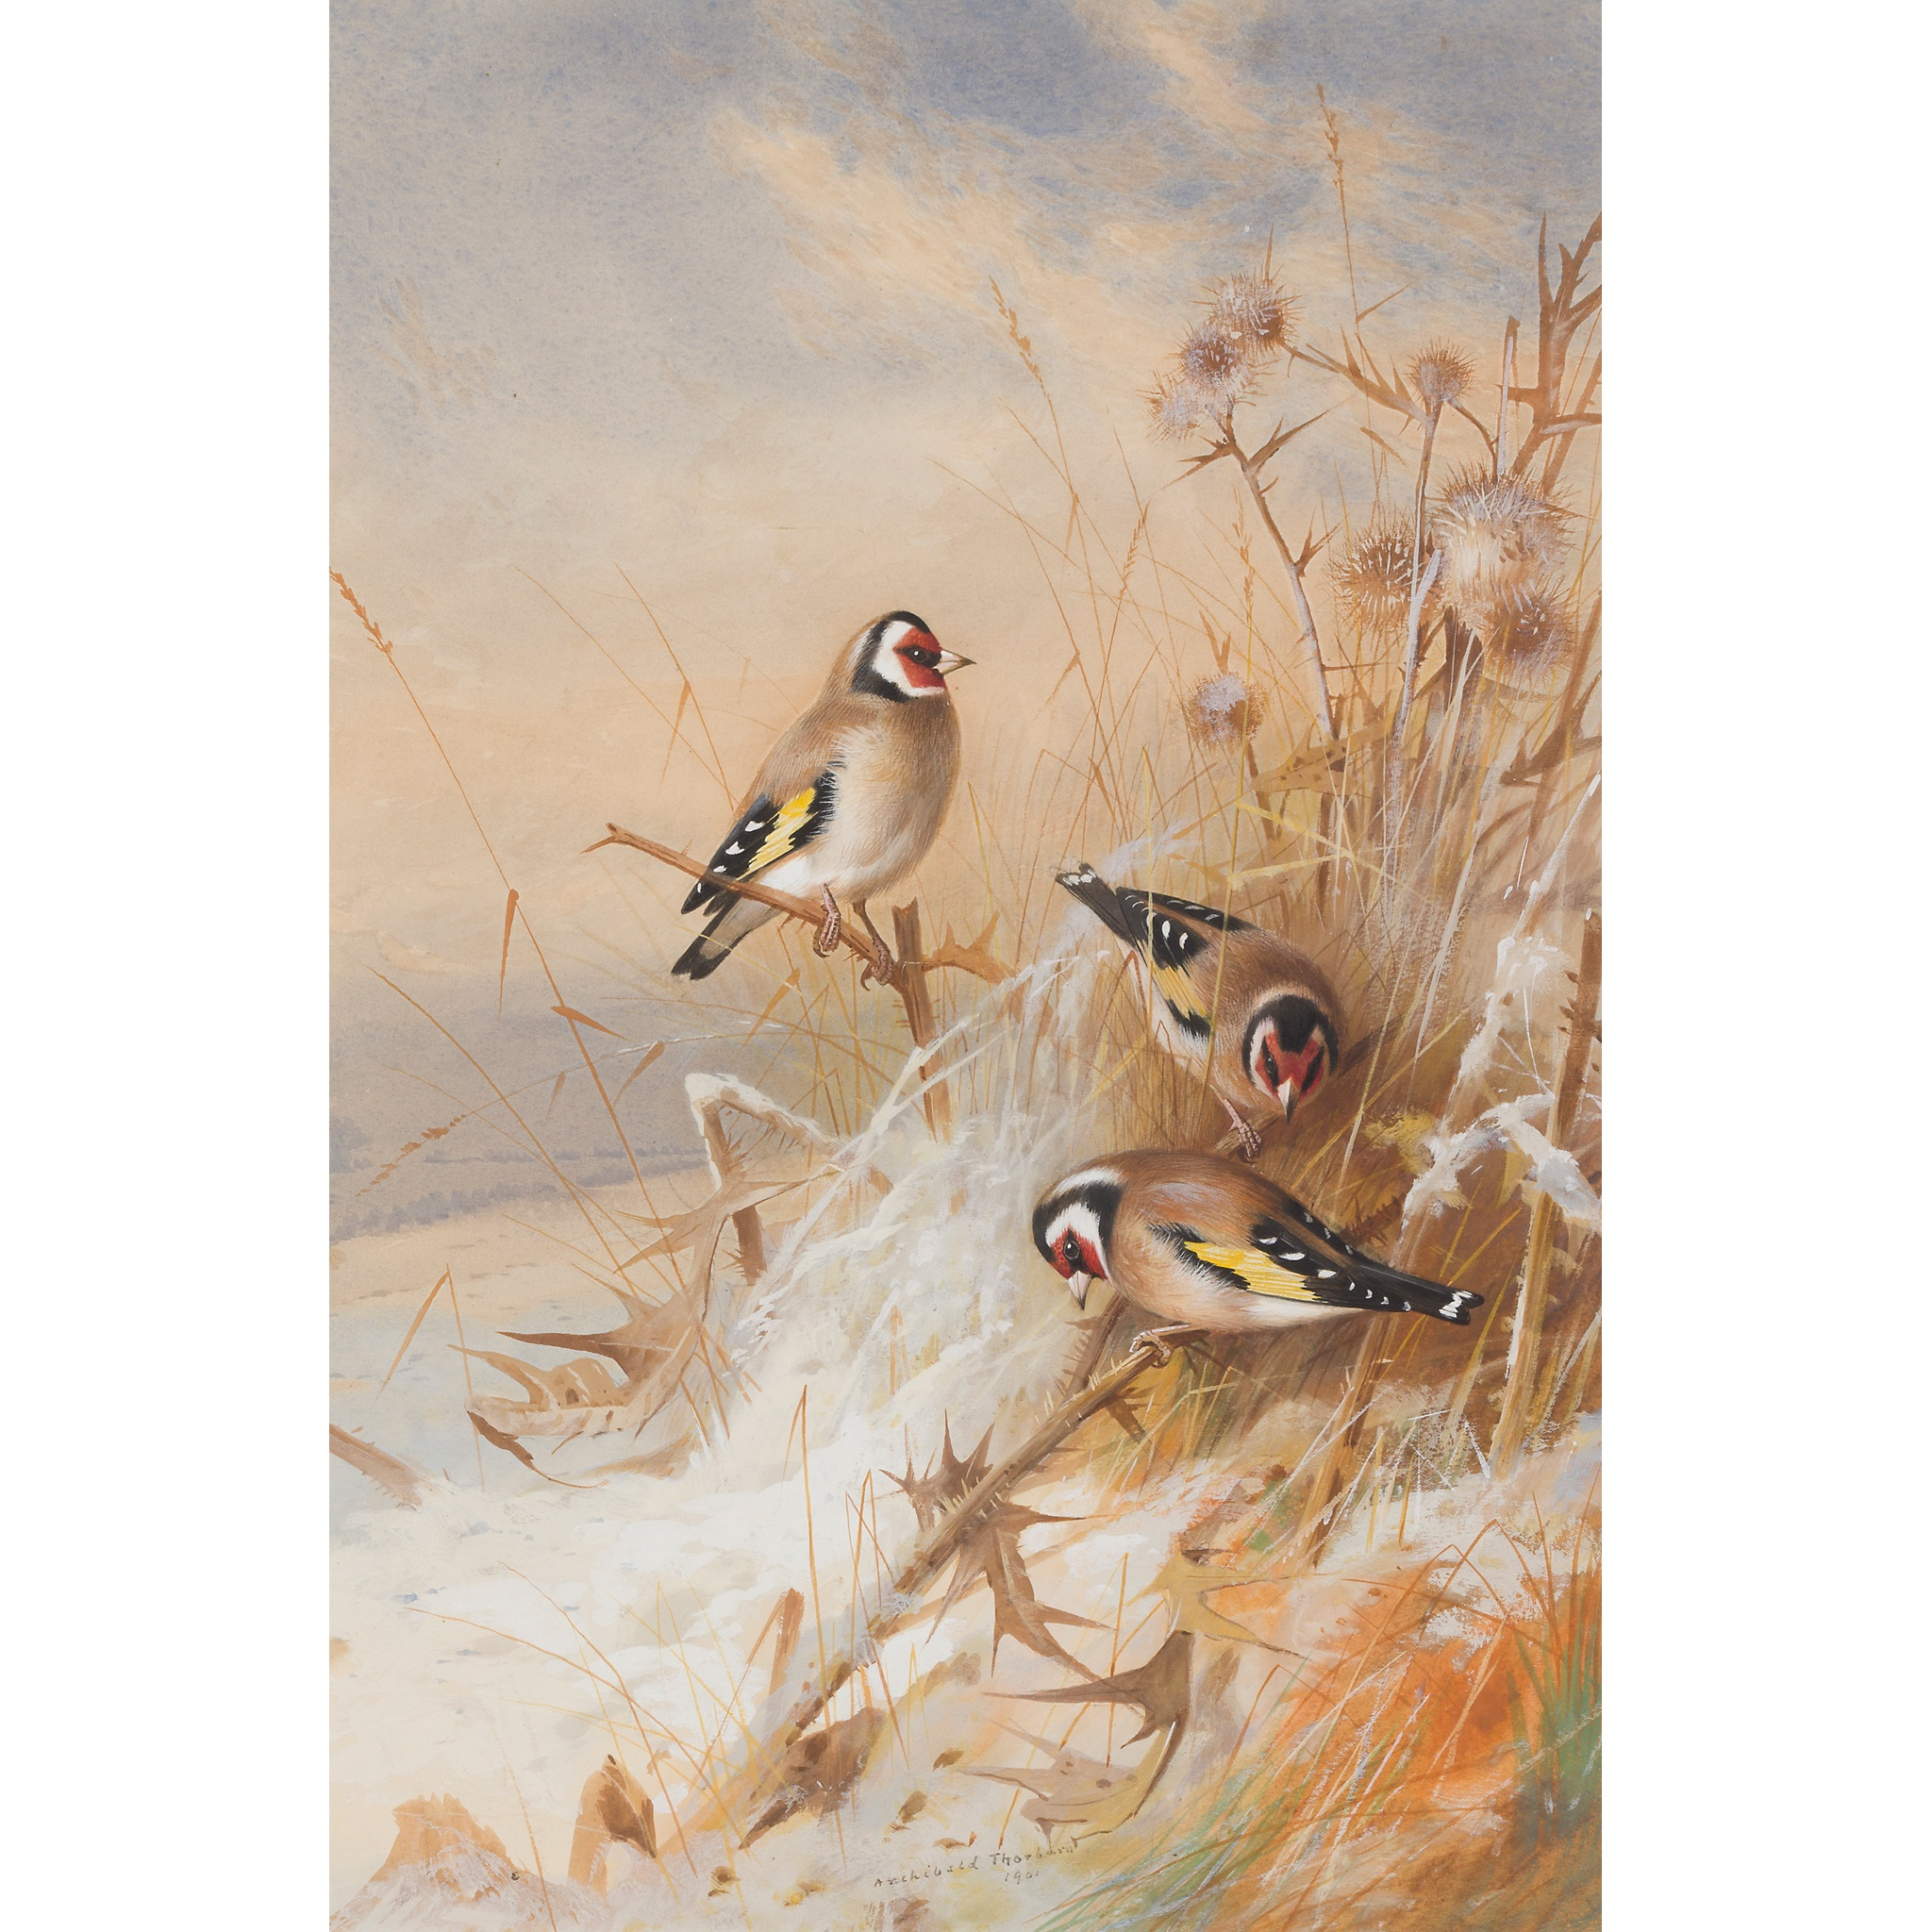 ARCHIBALD THORBURN (SCOTTISH 1860-1935) GOLDFINCHES IN THE SNOW